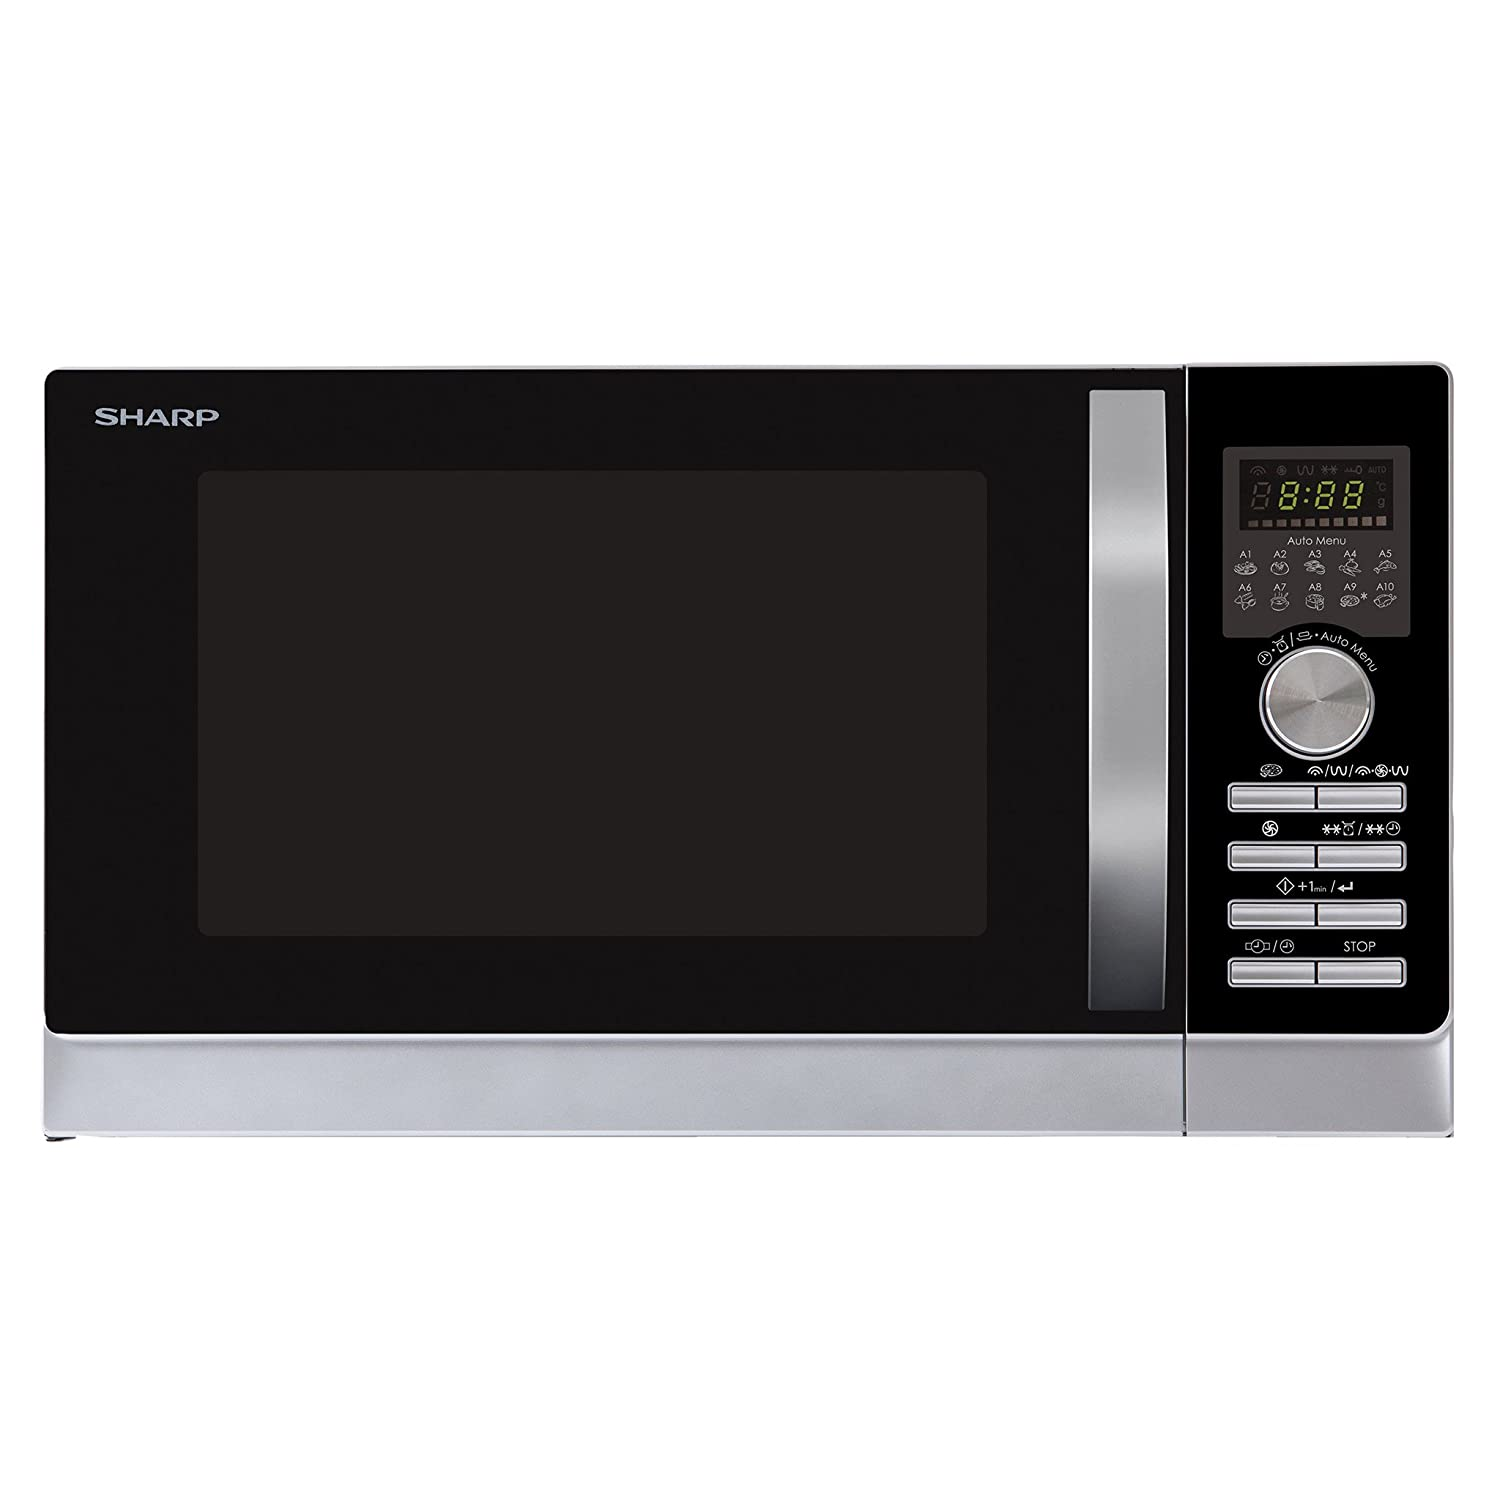 Sharp R843INW Mikrowelle/Express Pizza – Programm: Pizza optimal in ...